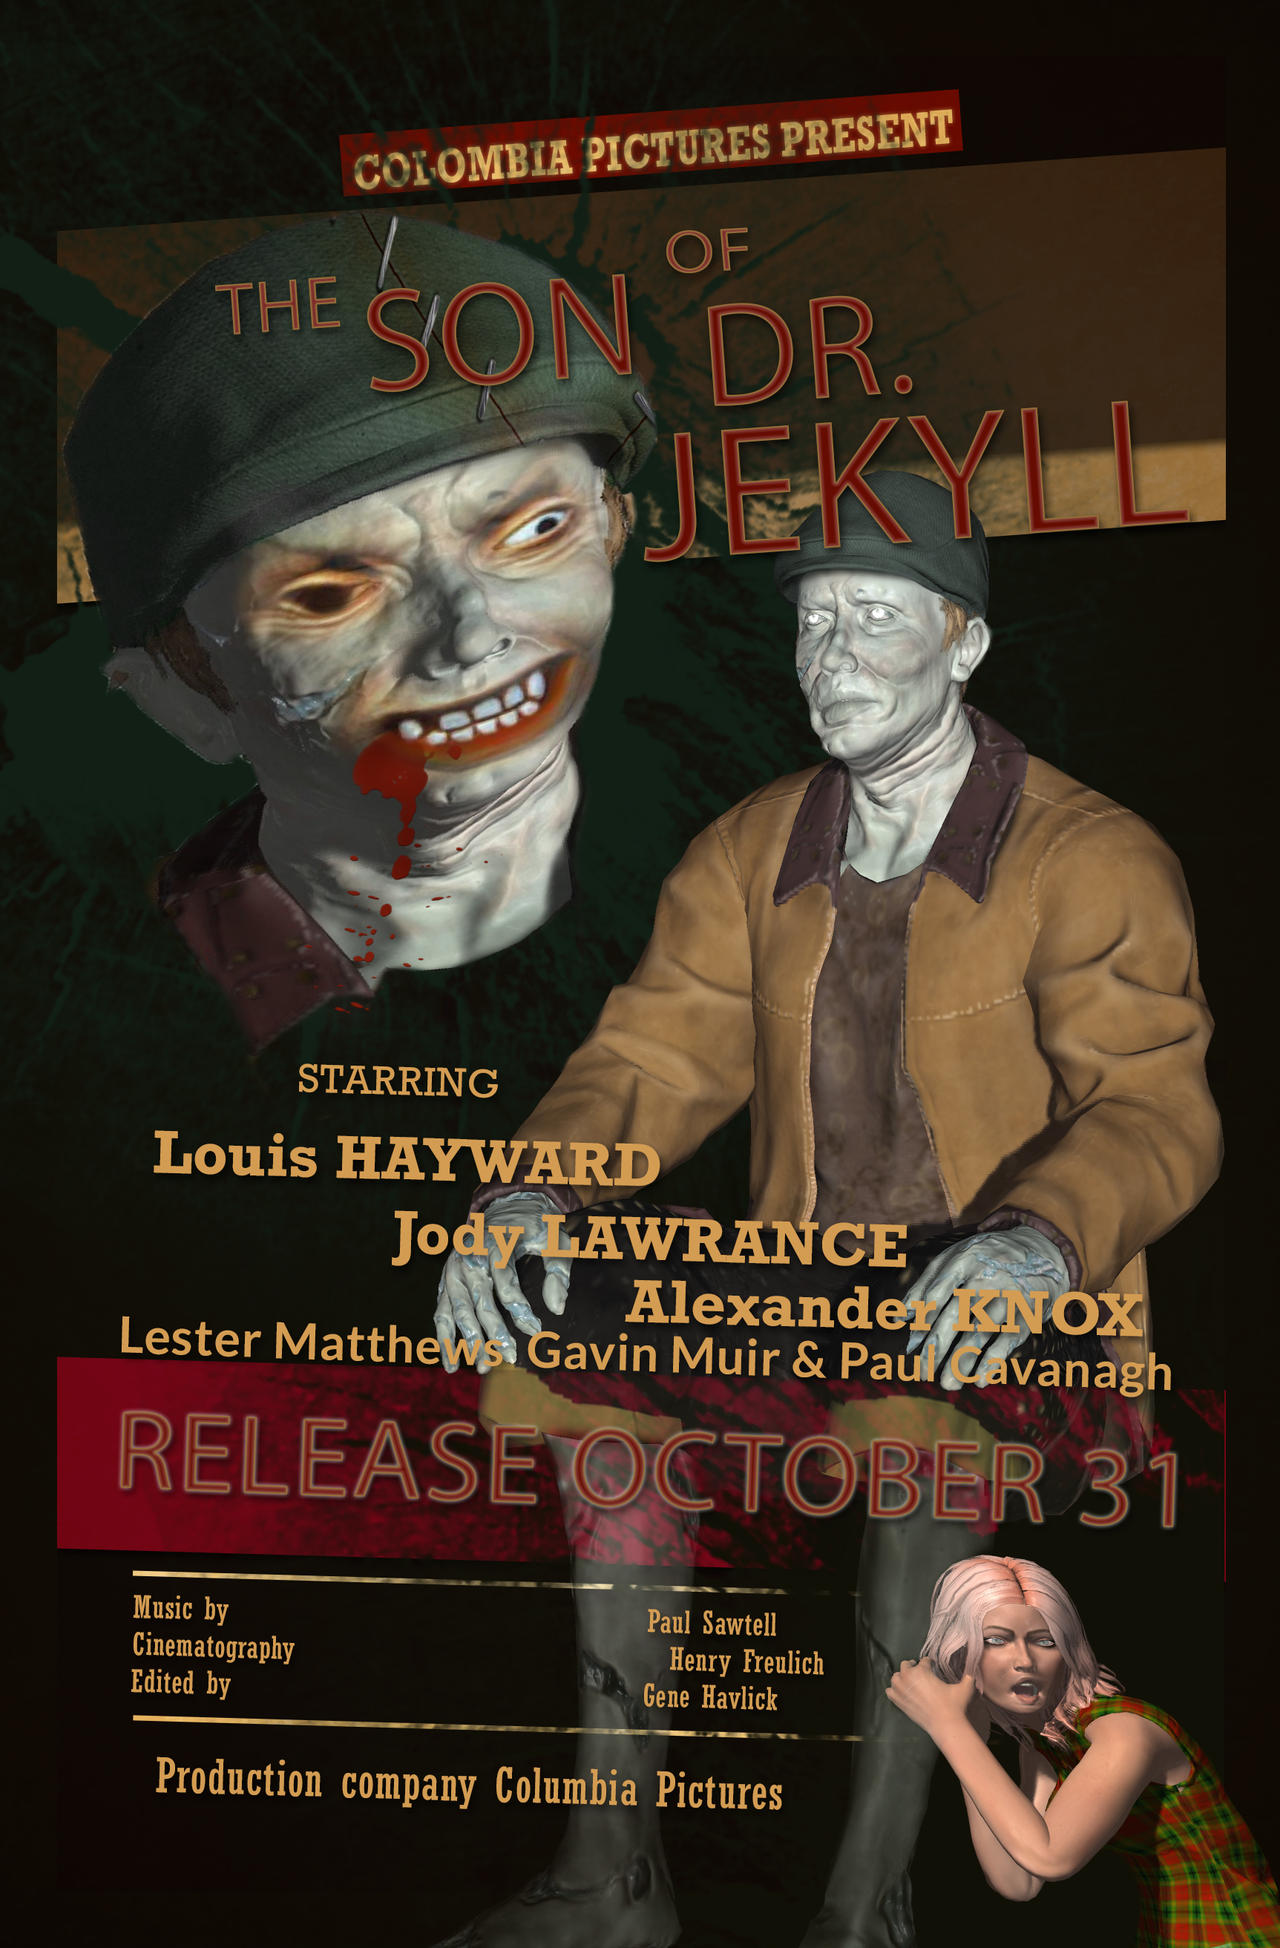 The son of Dr. Jekyll movie poster fifties style by SlichoArt